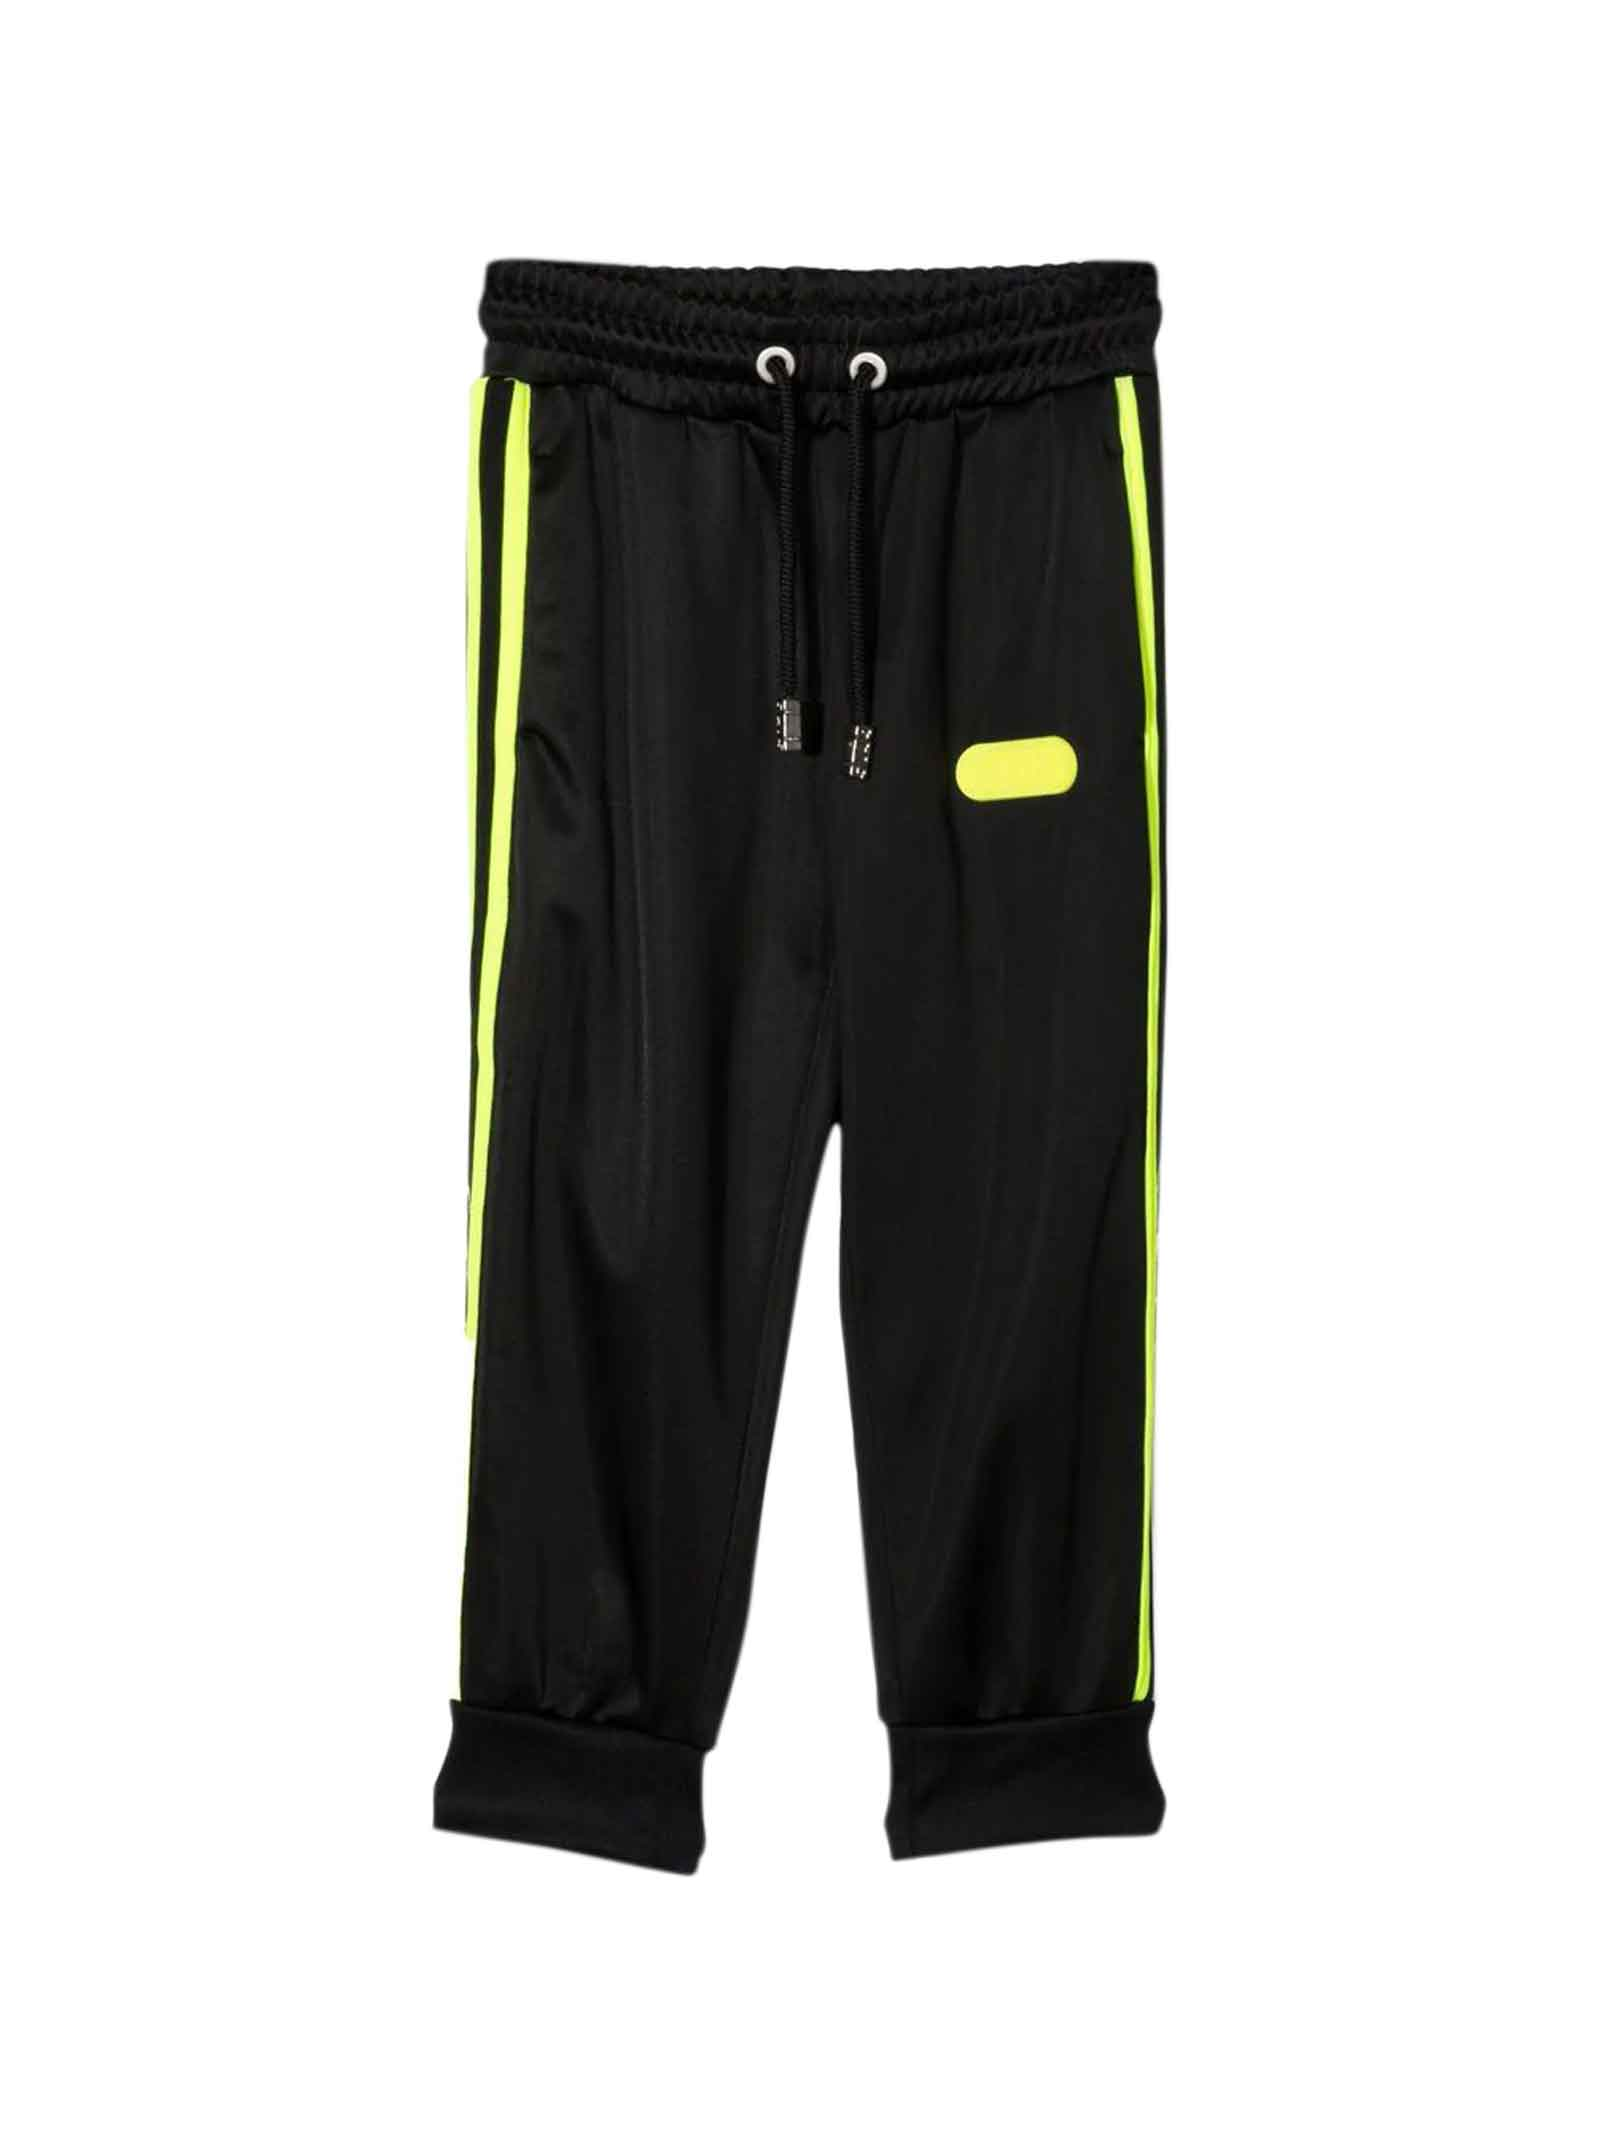 Black Trousers With Yellow Side Band